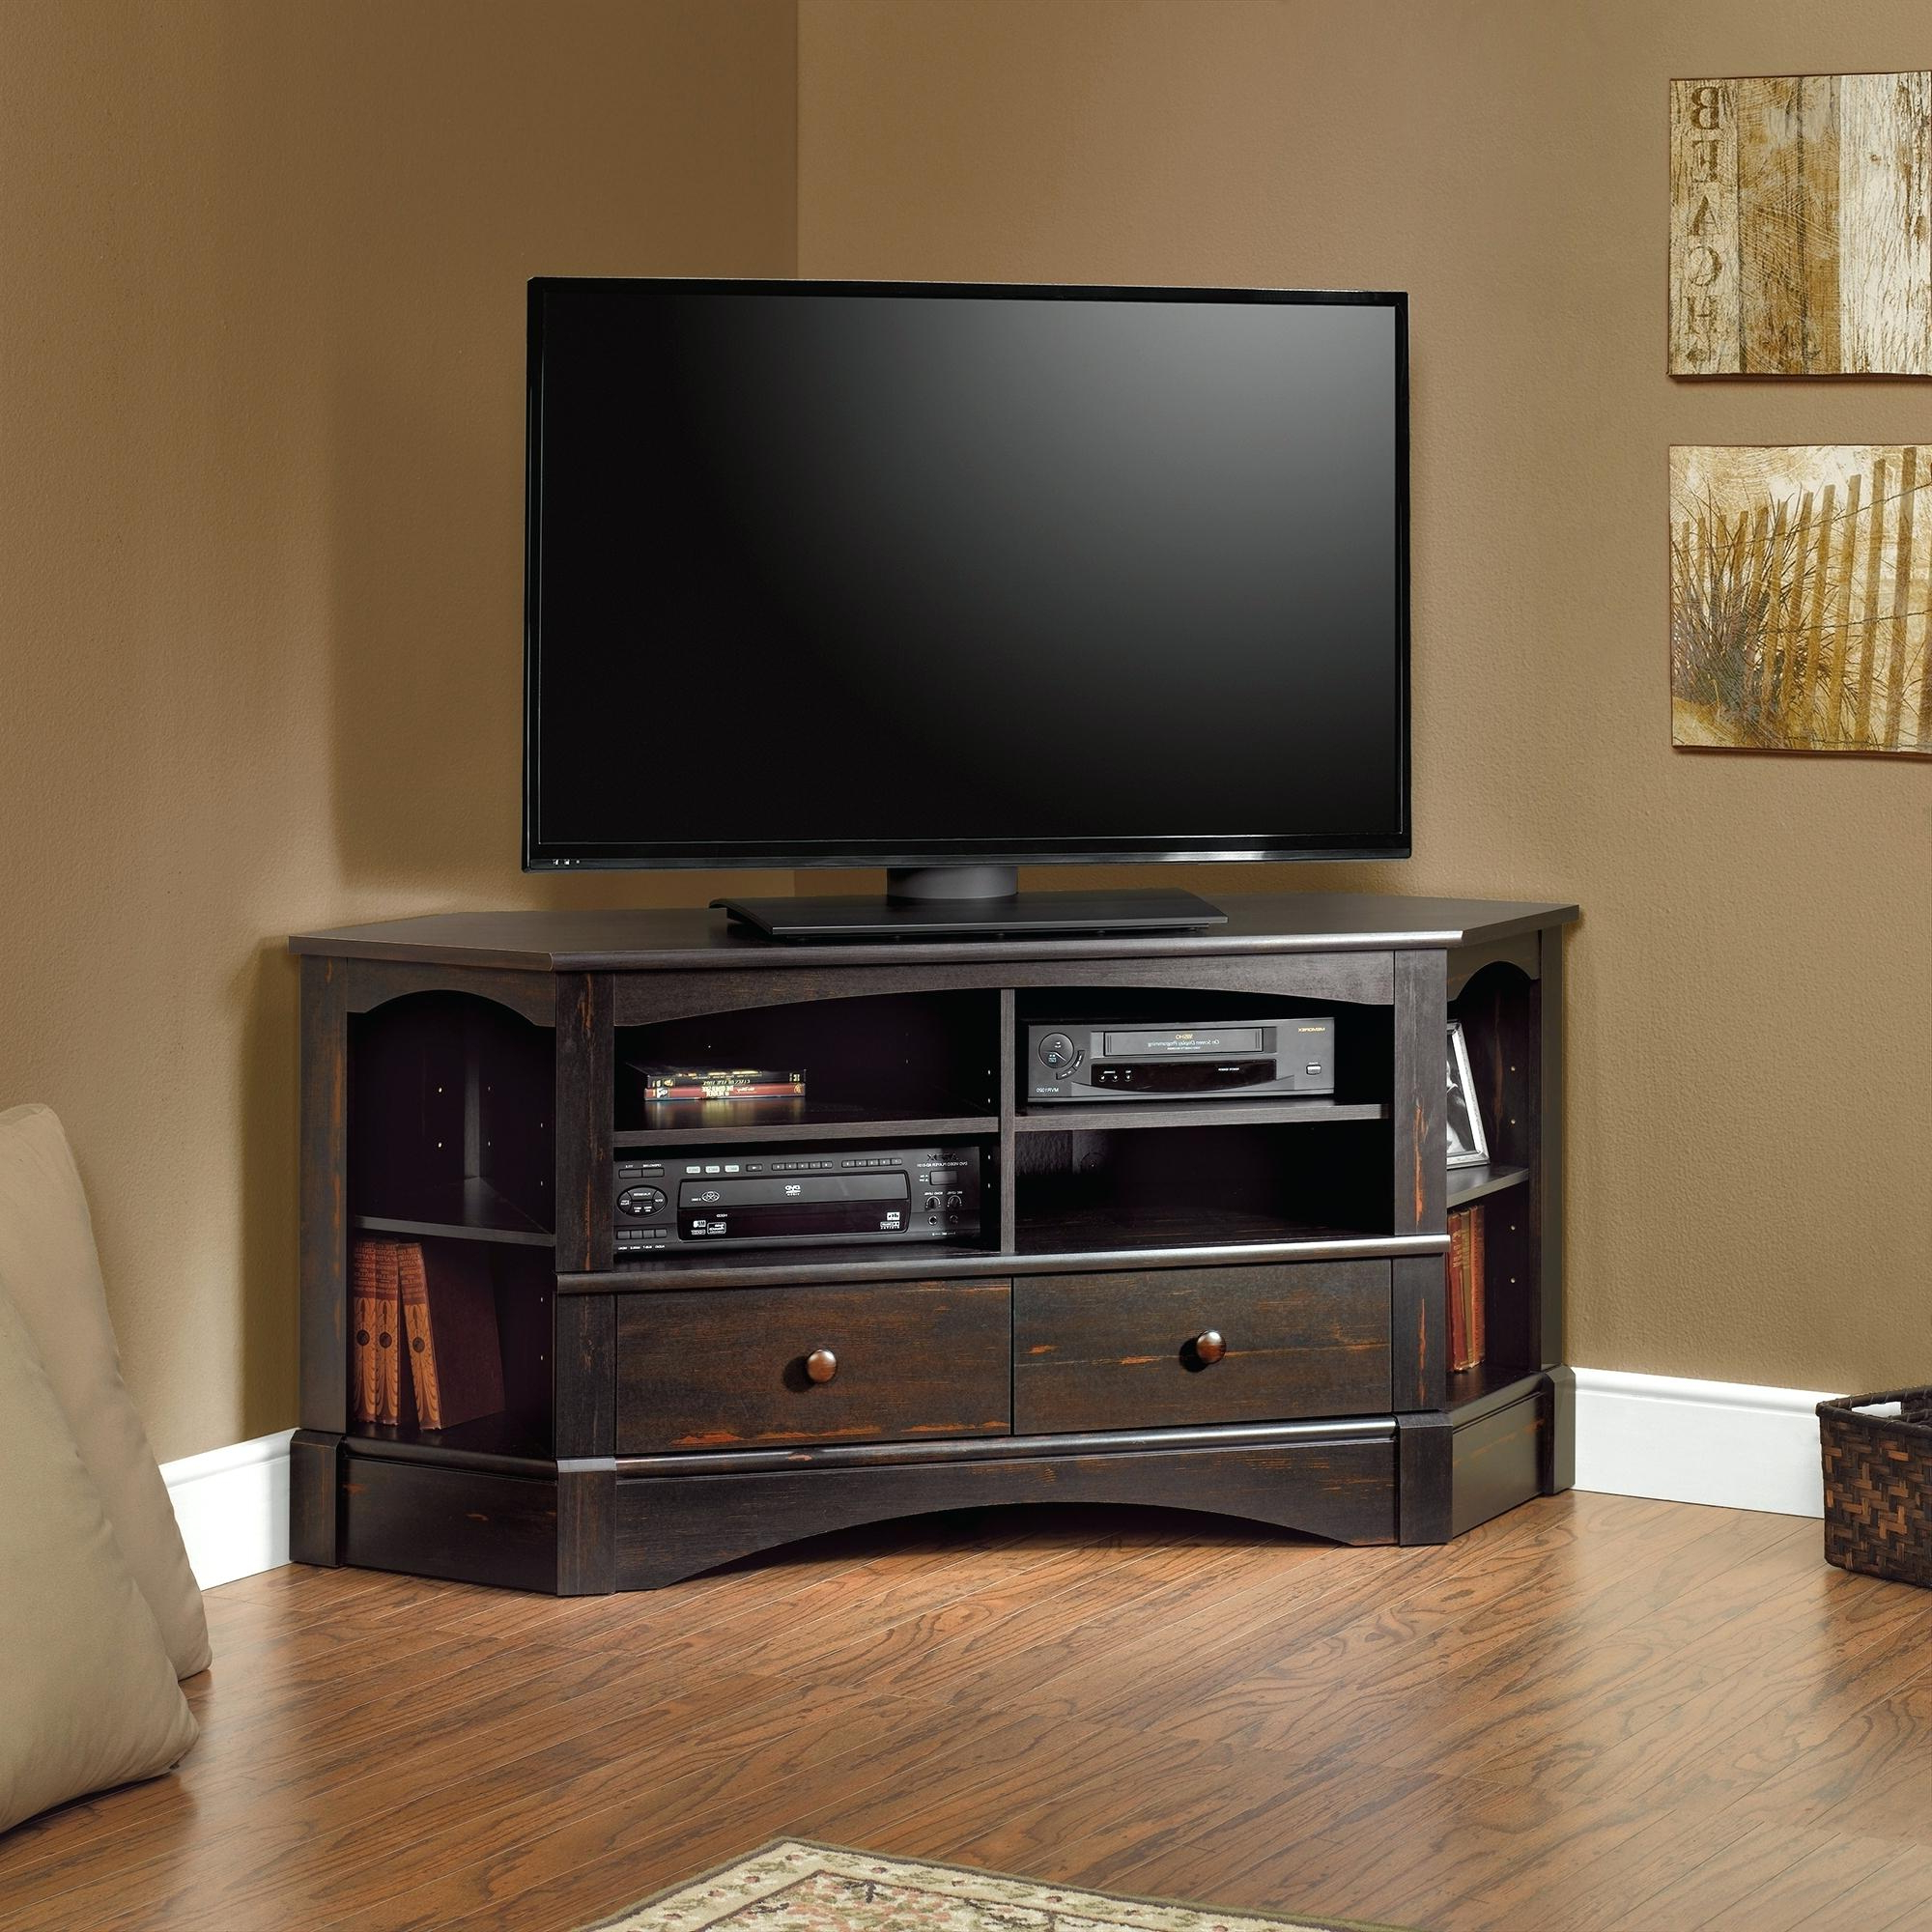 Preferred Corner Tv Stand For 50 Inch Tvs Up To Fit South Shore City Life Regarding 50 Inch Corner Tv Cabinets (View 19 of 20)